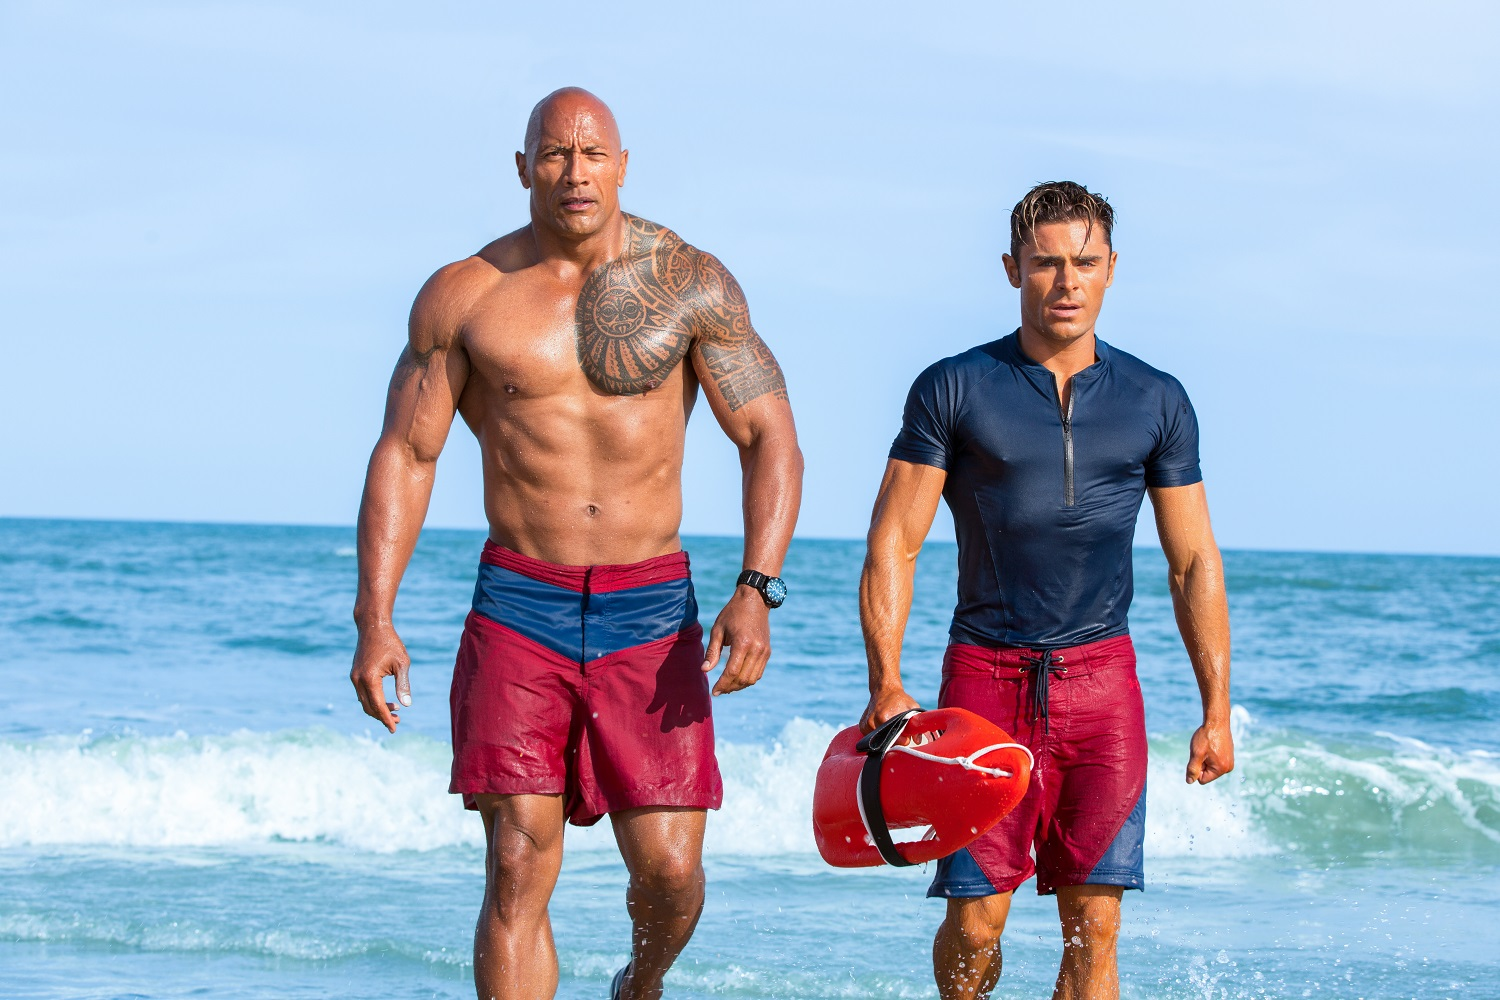 the-rock-baywatch.jpg?fit=1500%2C1000&ssl=1